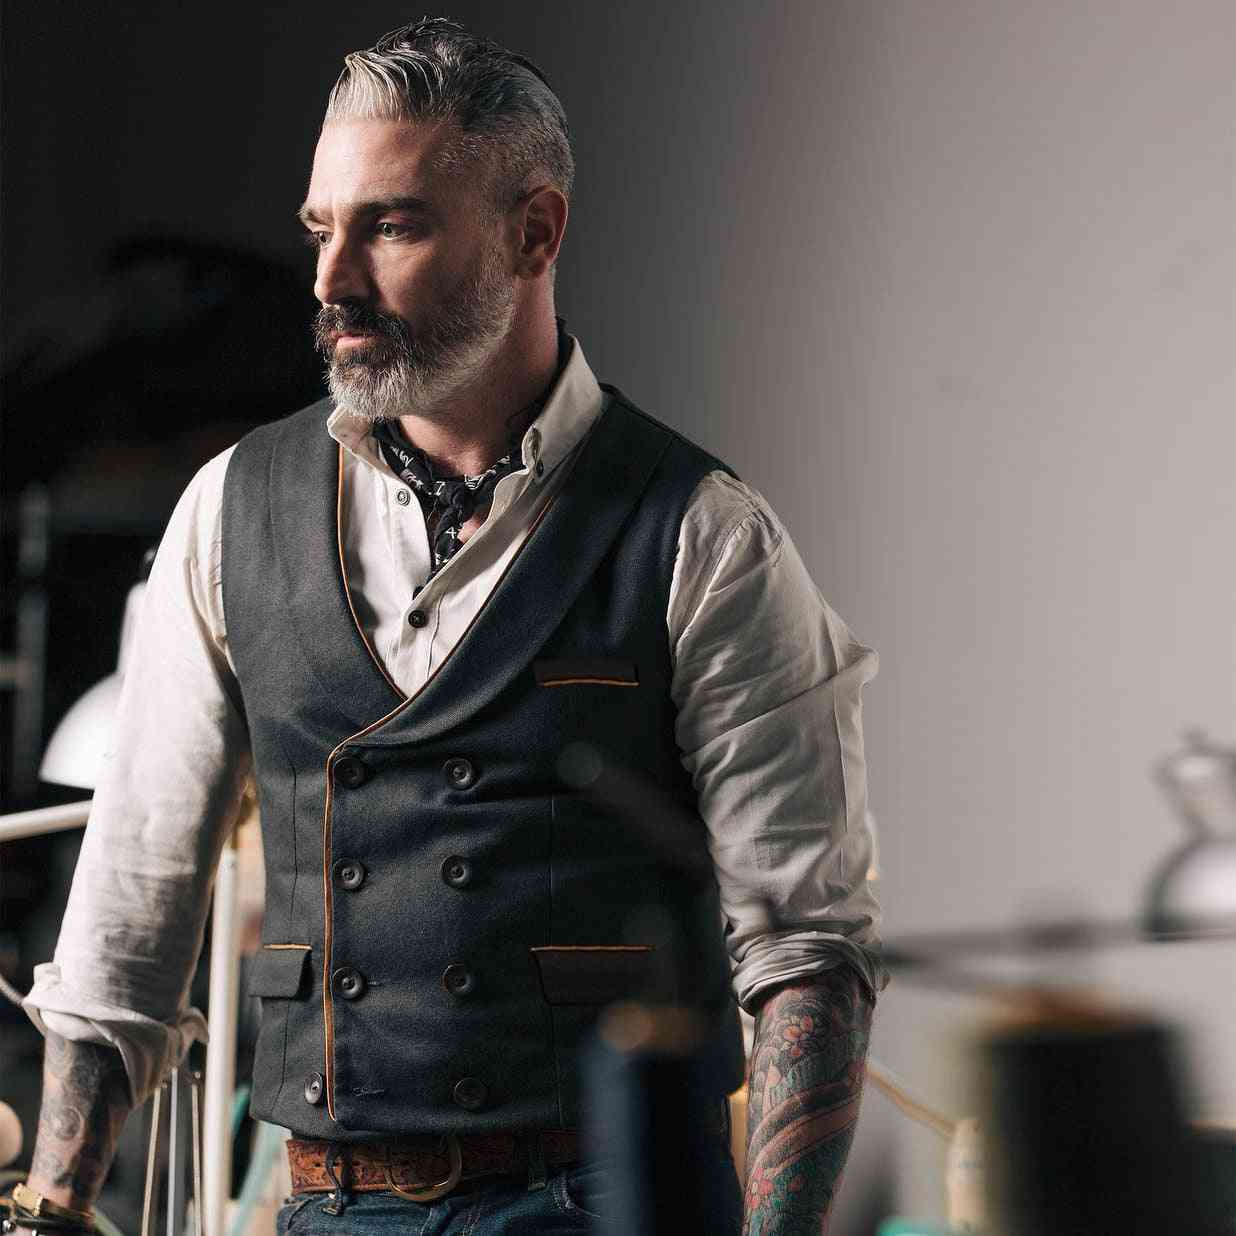 Mens Suit Vest, Casual Sleeveless Waistcoat - Single Breasted Vests